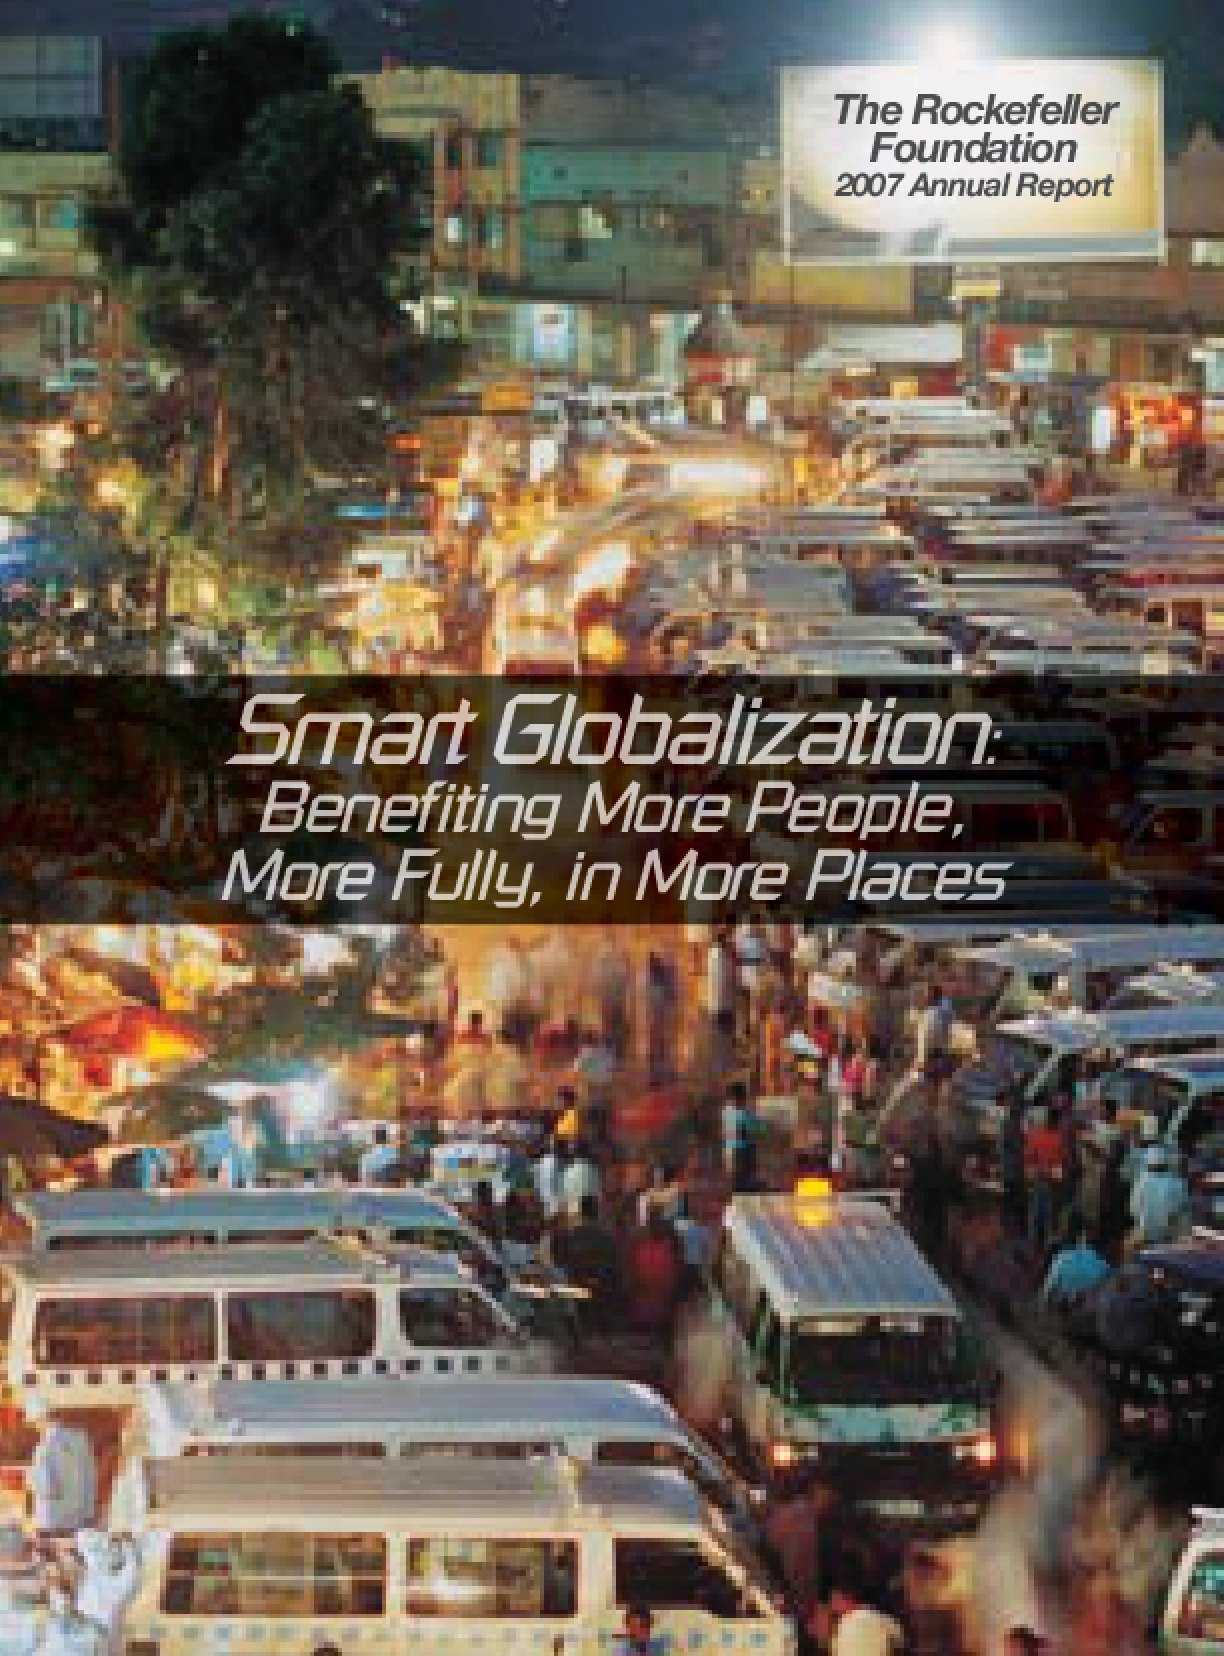 Rockefeller Foundation - 2007 Annual Report: Smart Globalization: Benefiting More People, More Fully, in More Places